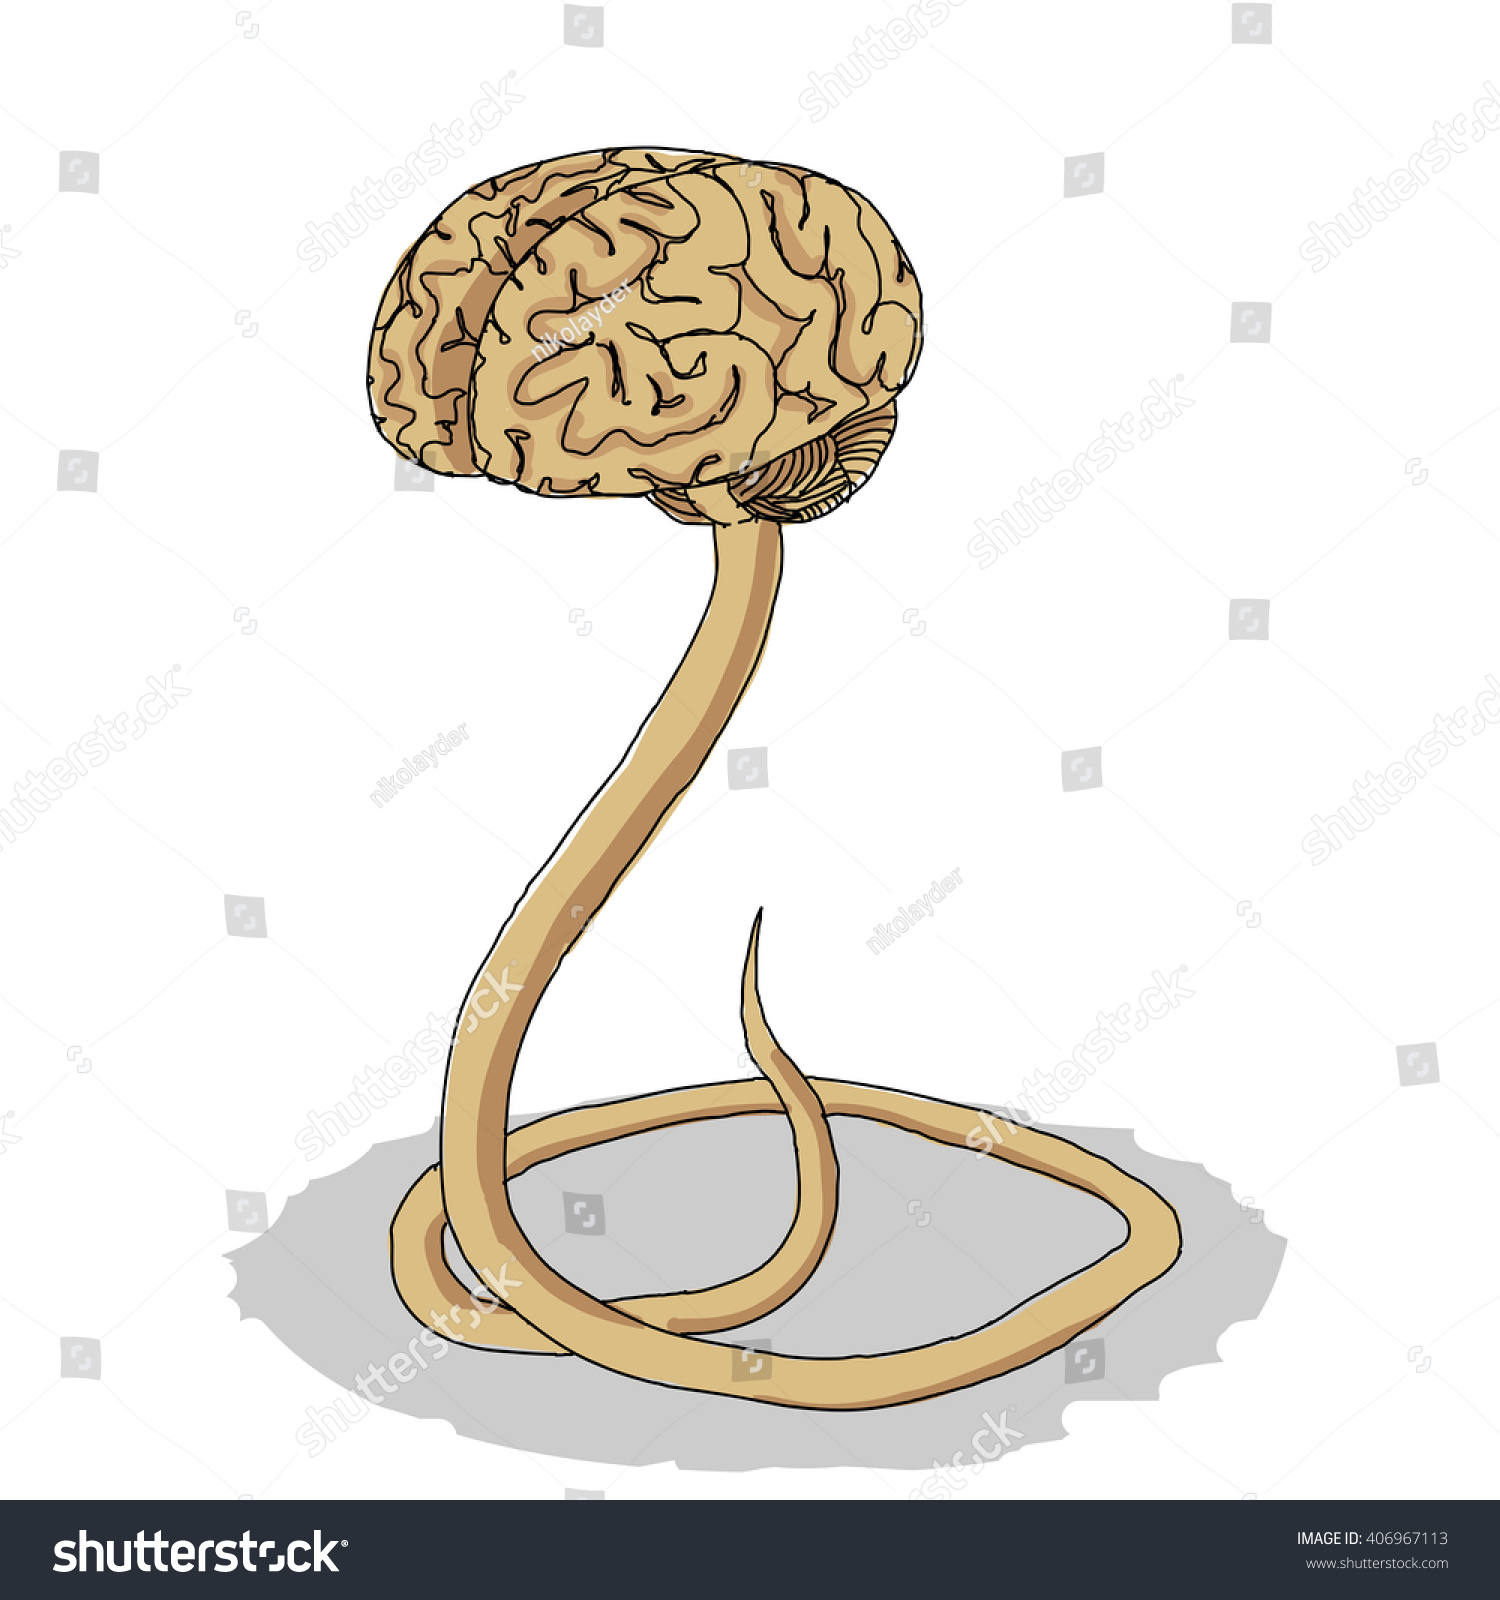 Handdrawn Human Brain Like Snake Brainstorm Stock Vector (Royalty ...